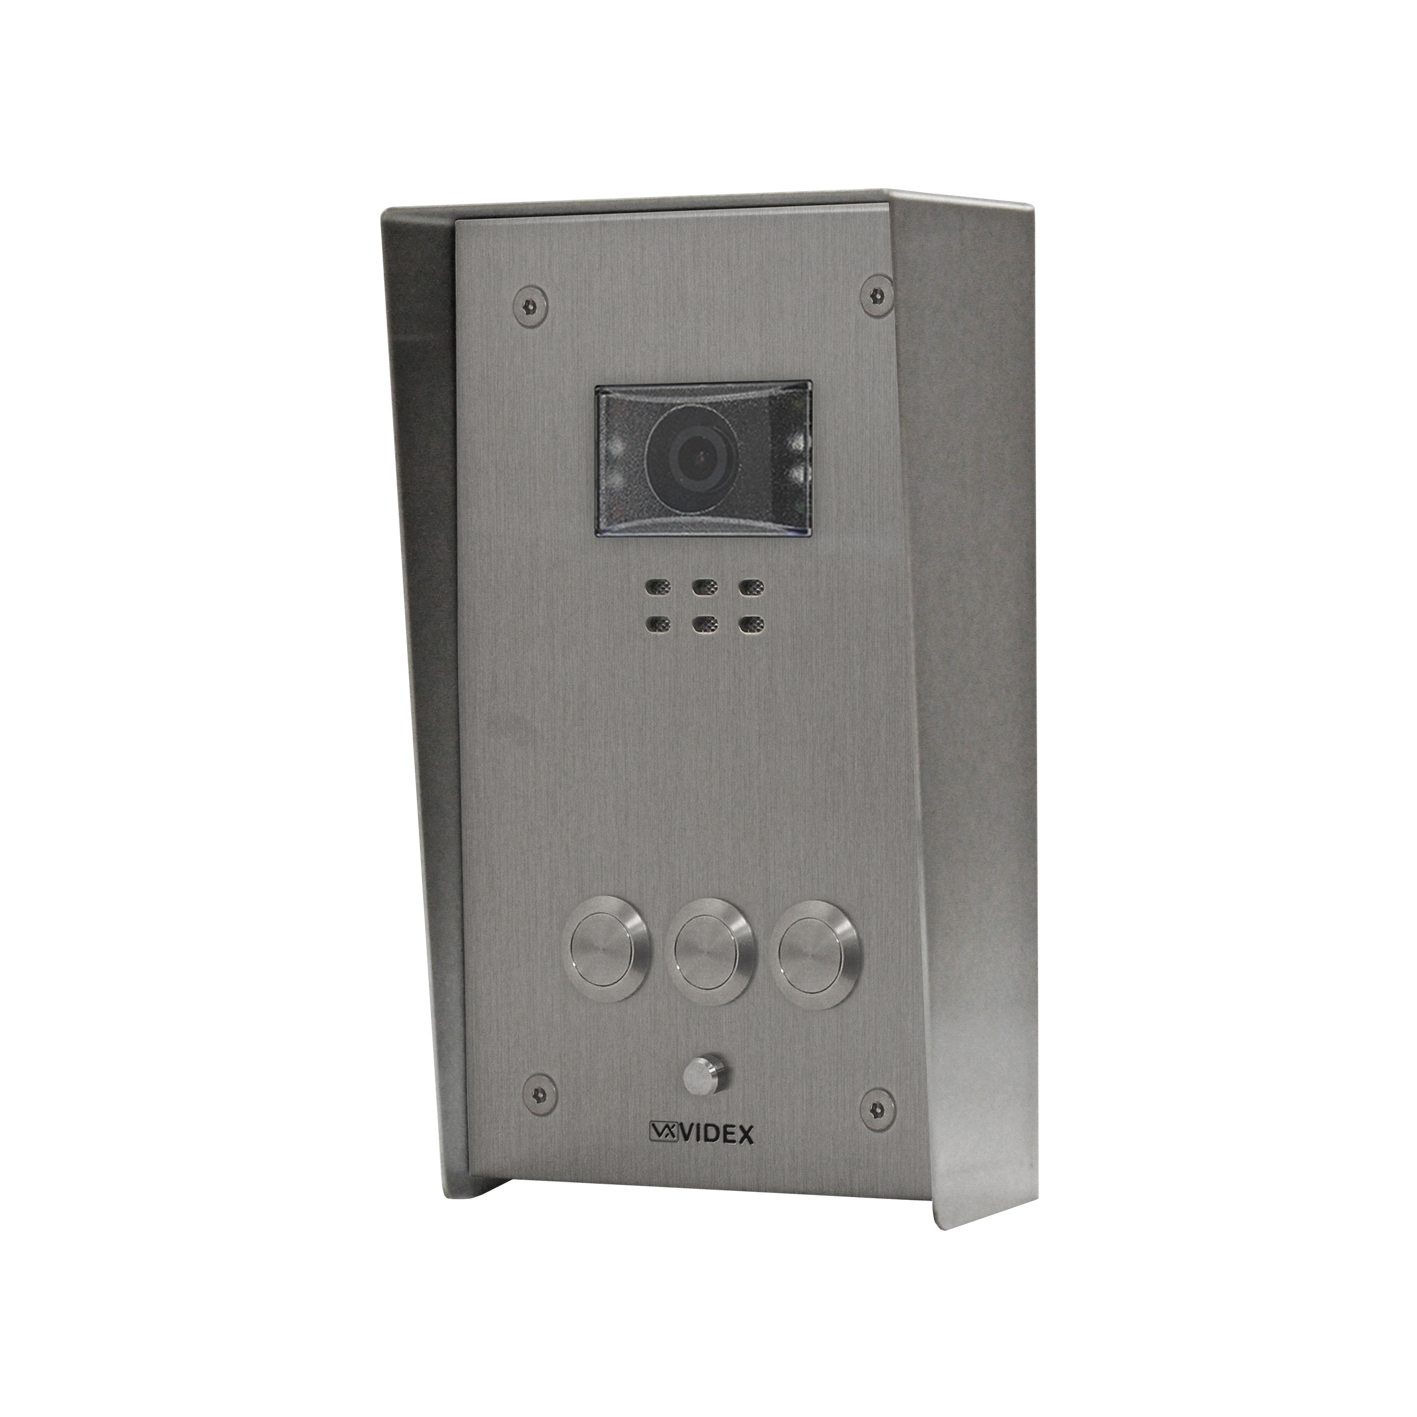 3 button Vandal Resistant IP Colour Video Panel (surface)